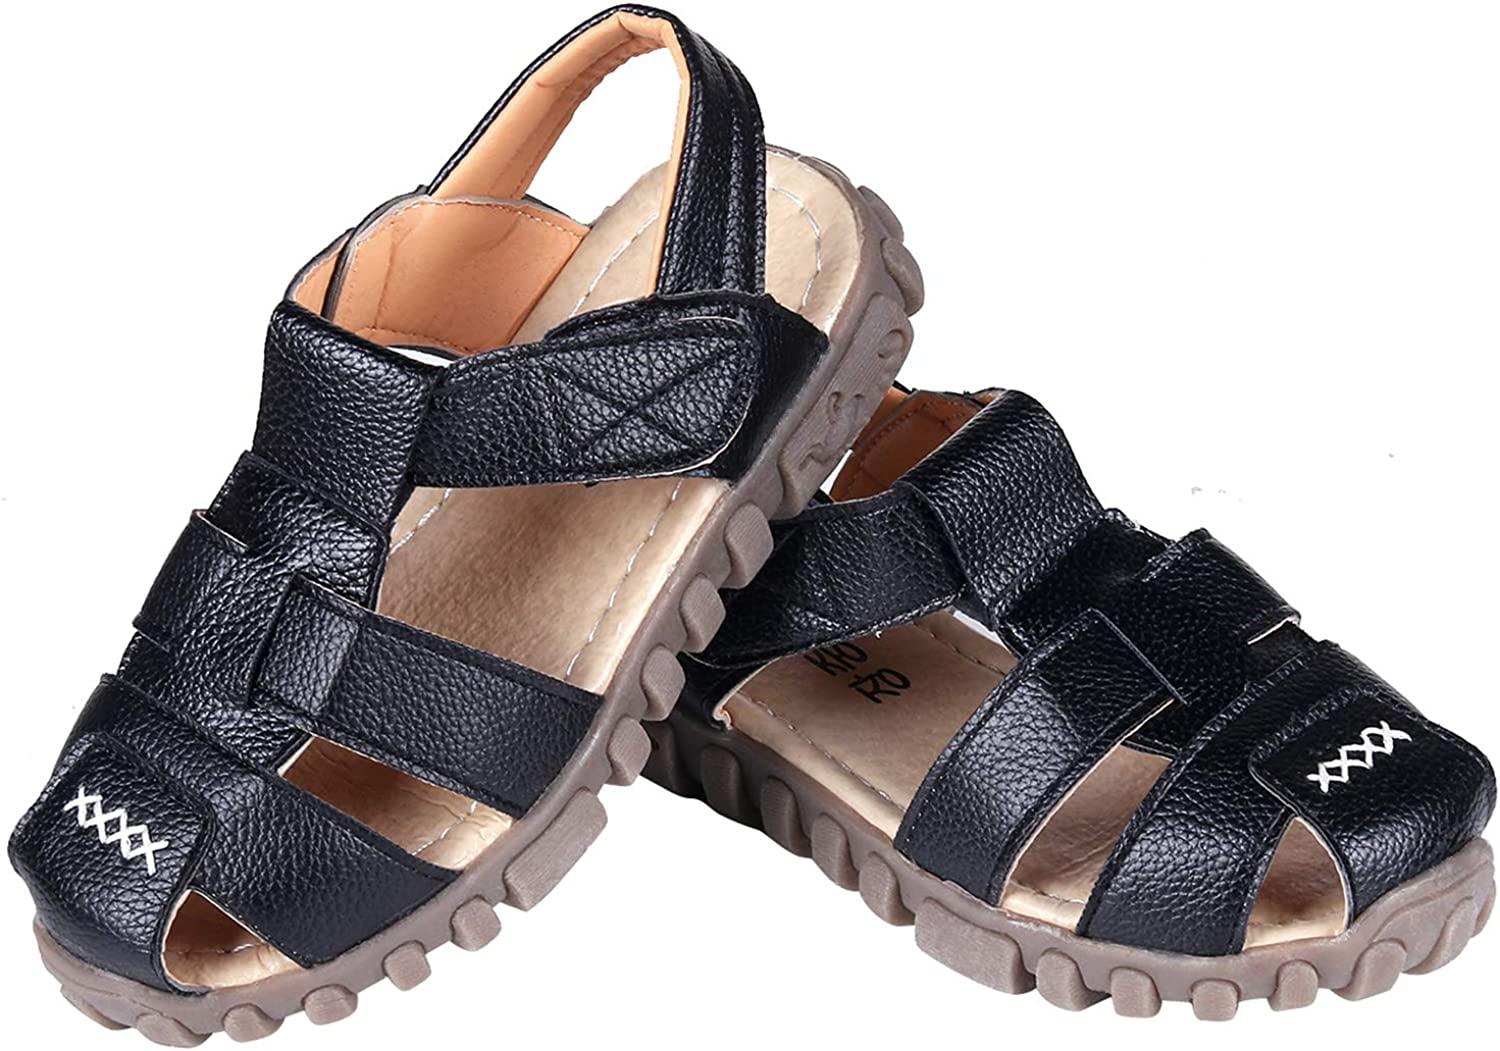 32 Black Kids Leather Closed Toe Sandals Boys Girls Outdoor Flat Shoes Breathable Sport Sandals Toddler//Little Kid//Big Kid